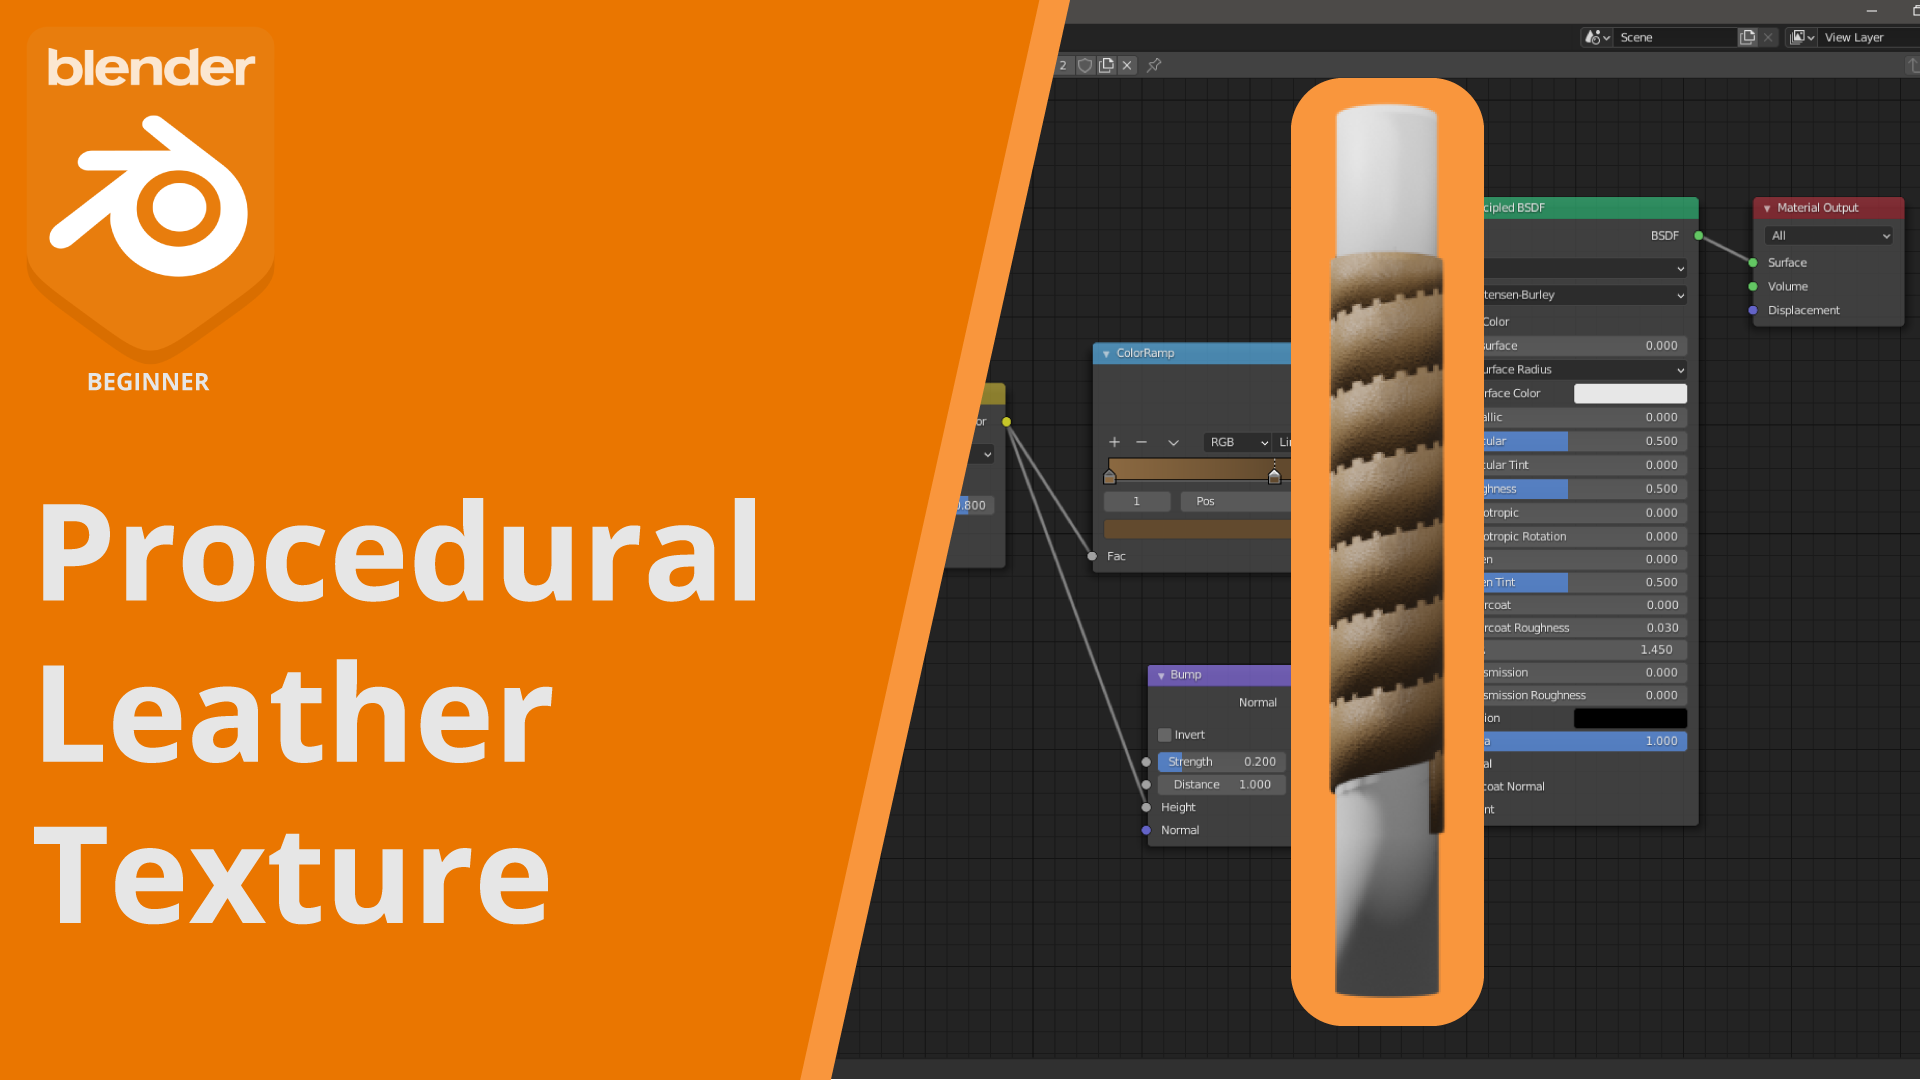 Procedural Leather Texture How To Use It On A Model Blender 2 9 Blendernation